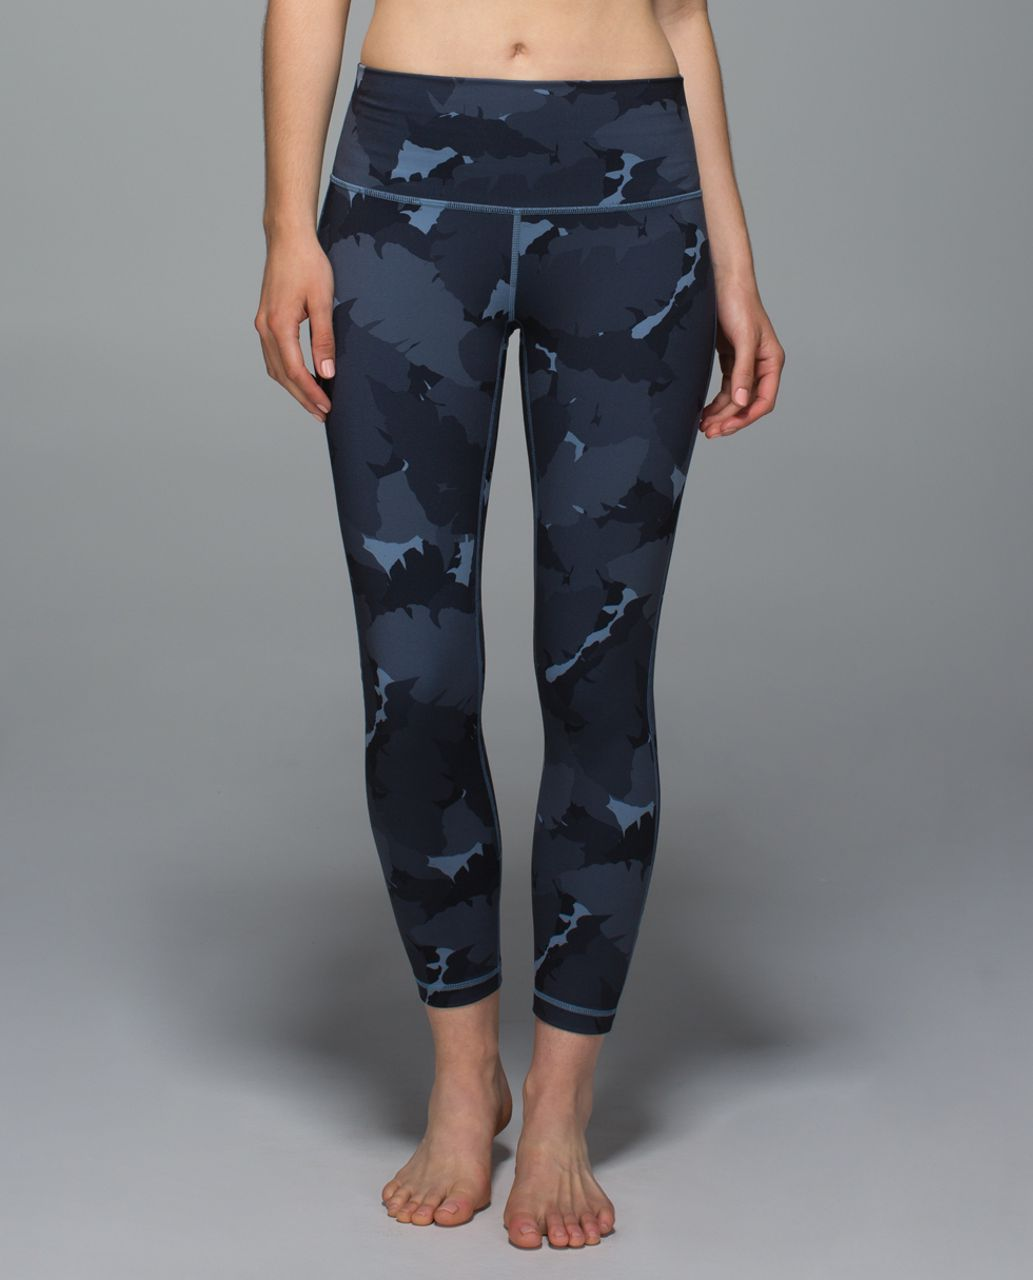 Lululemon High Times Pant *Full-On Luon - Palm Party Blue Denim Black